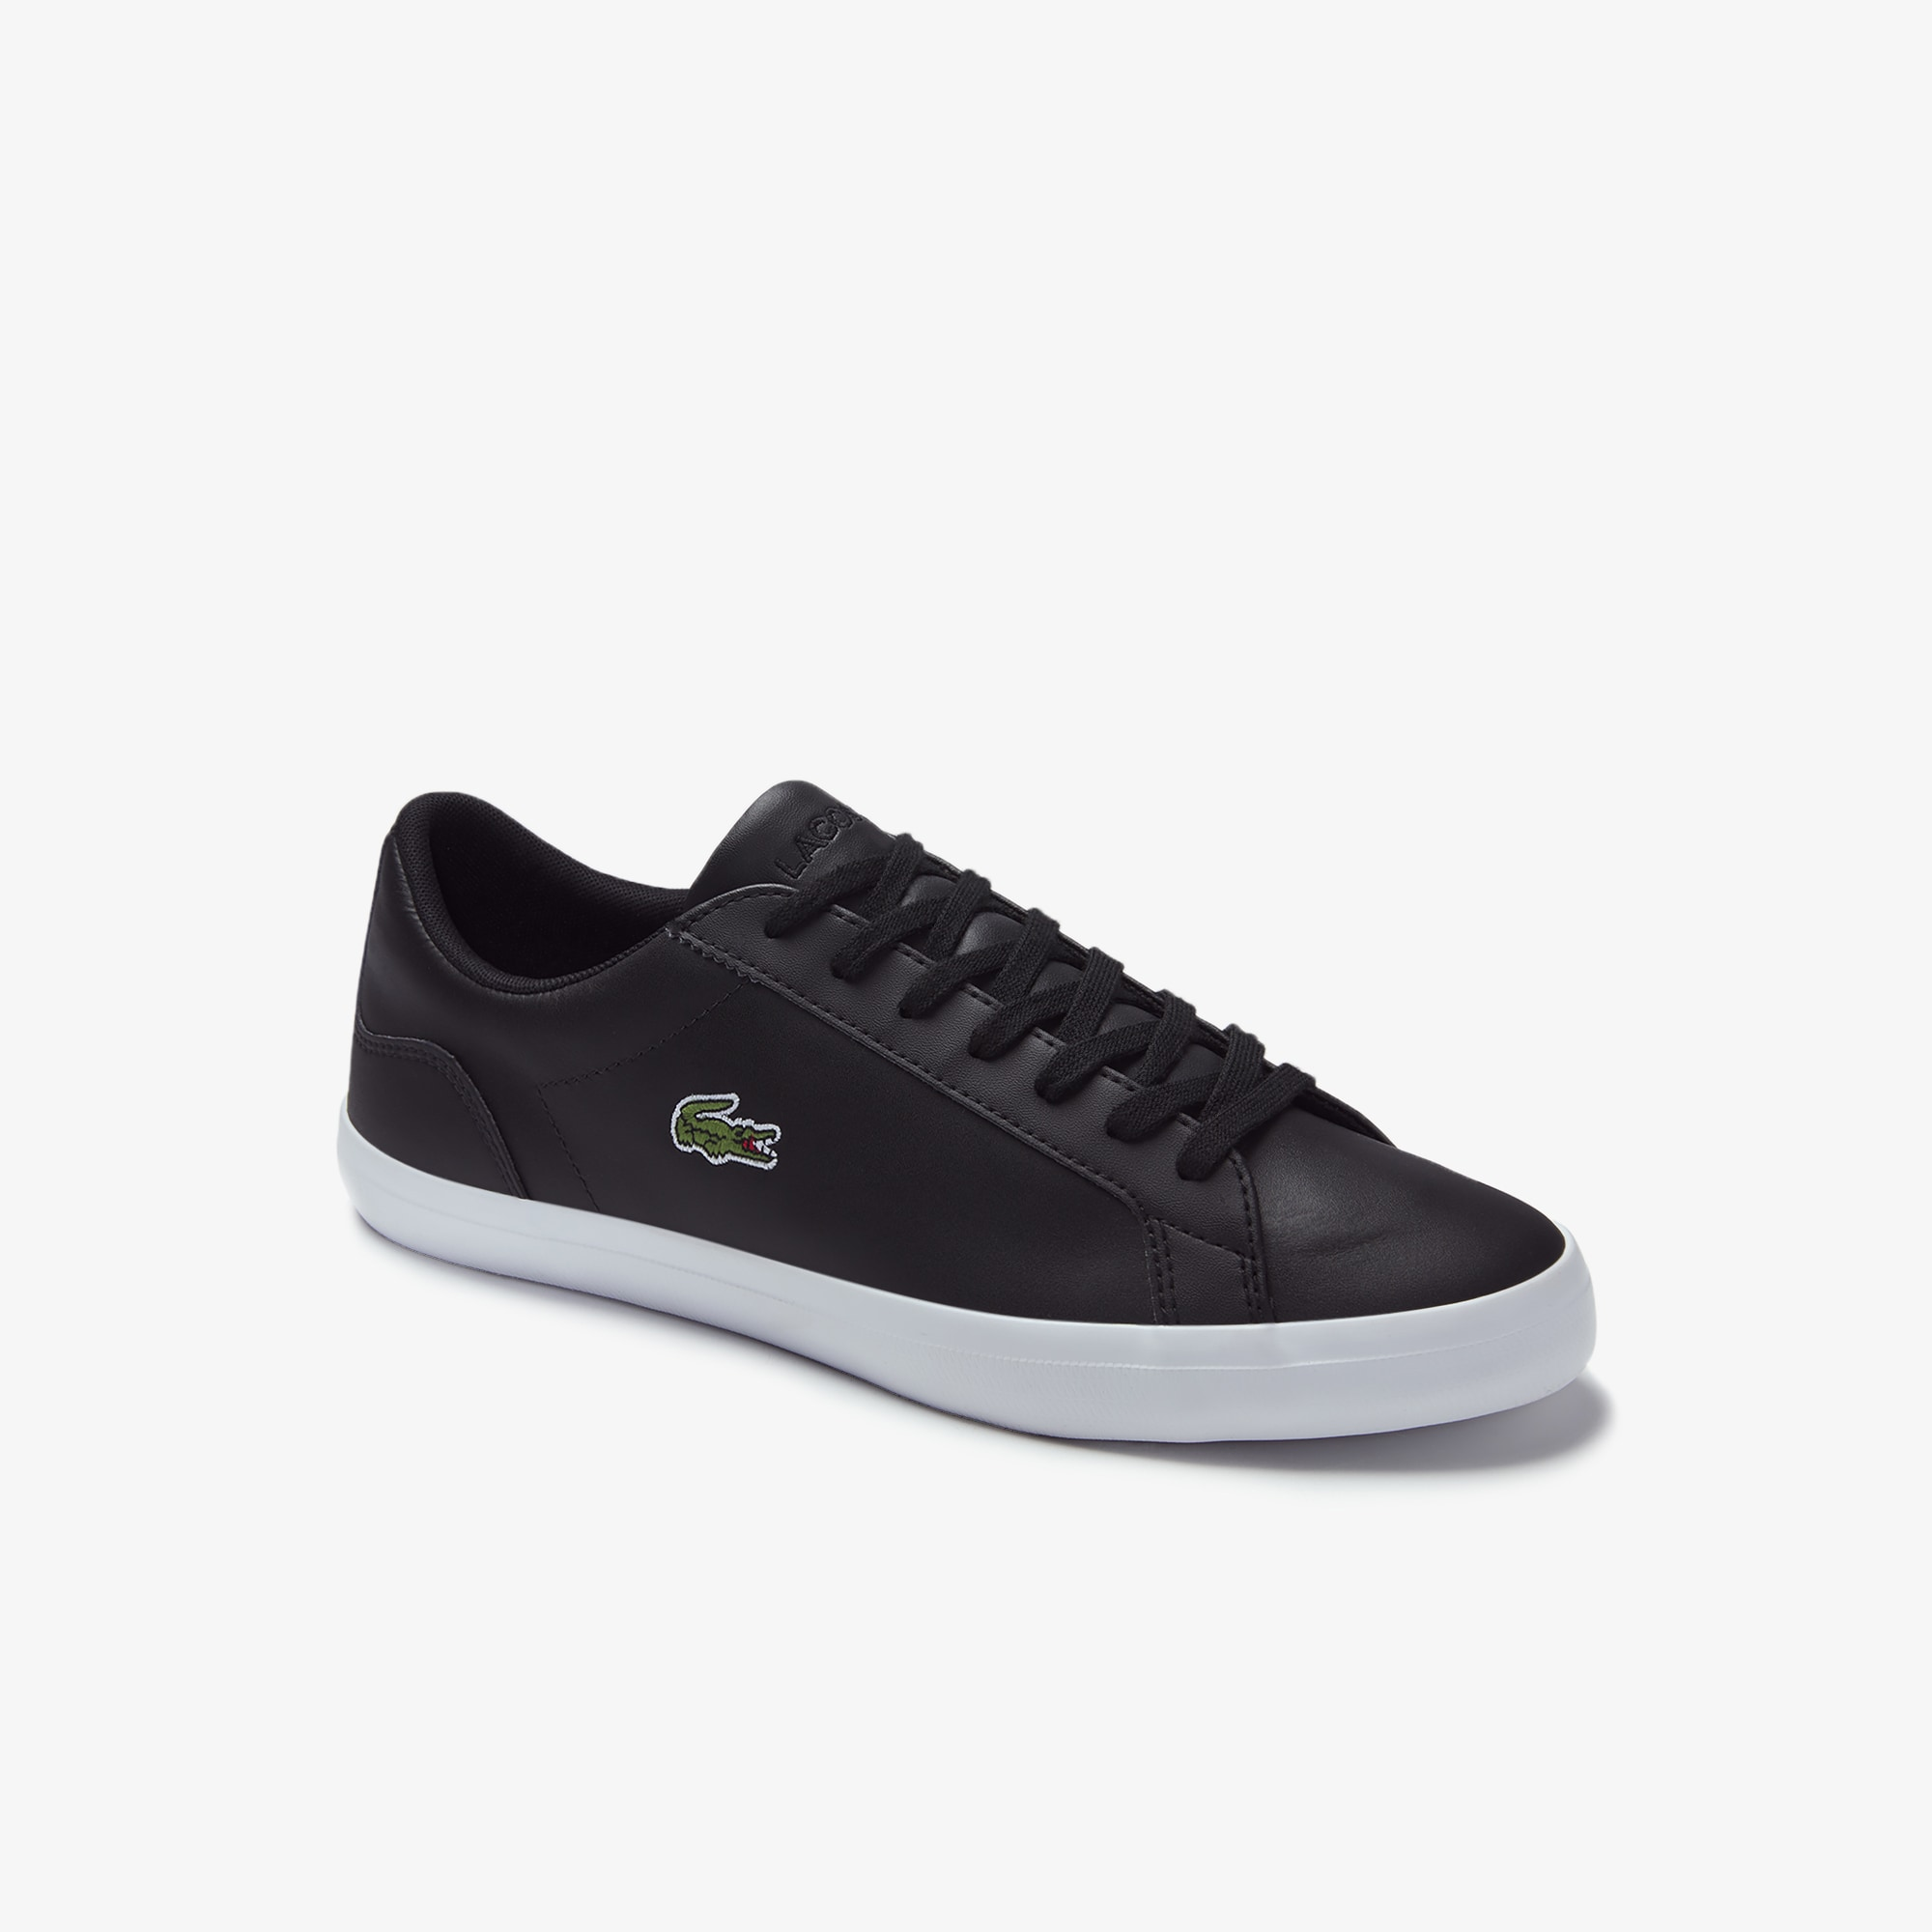 Lacoste shoes for men  Sneakers, Trainers, Boots   LACOSTE ccb2a0f9c1